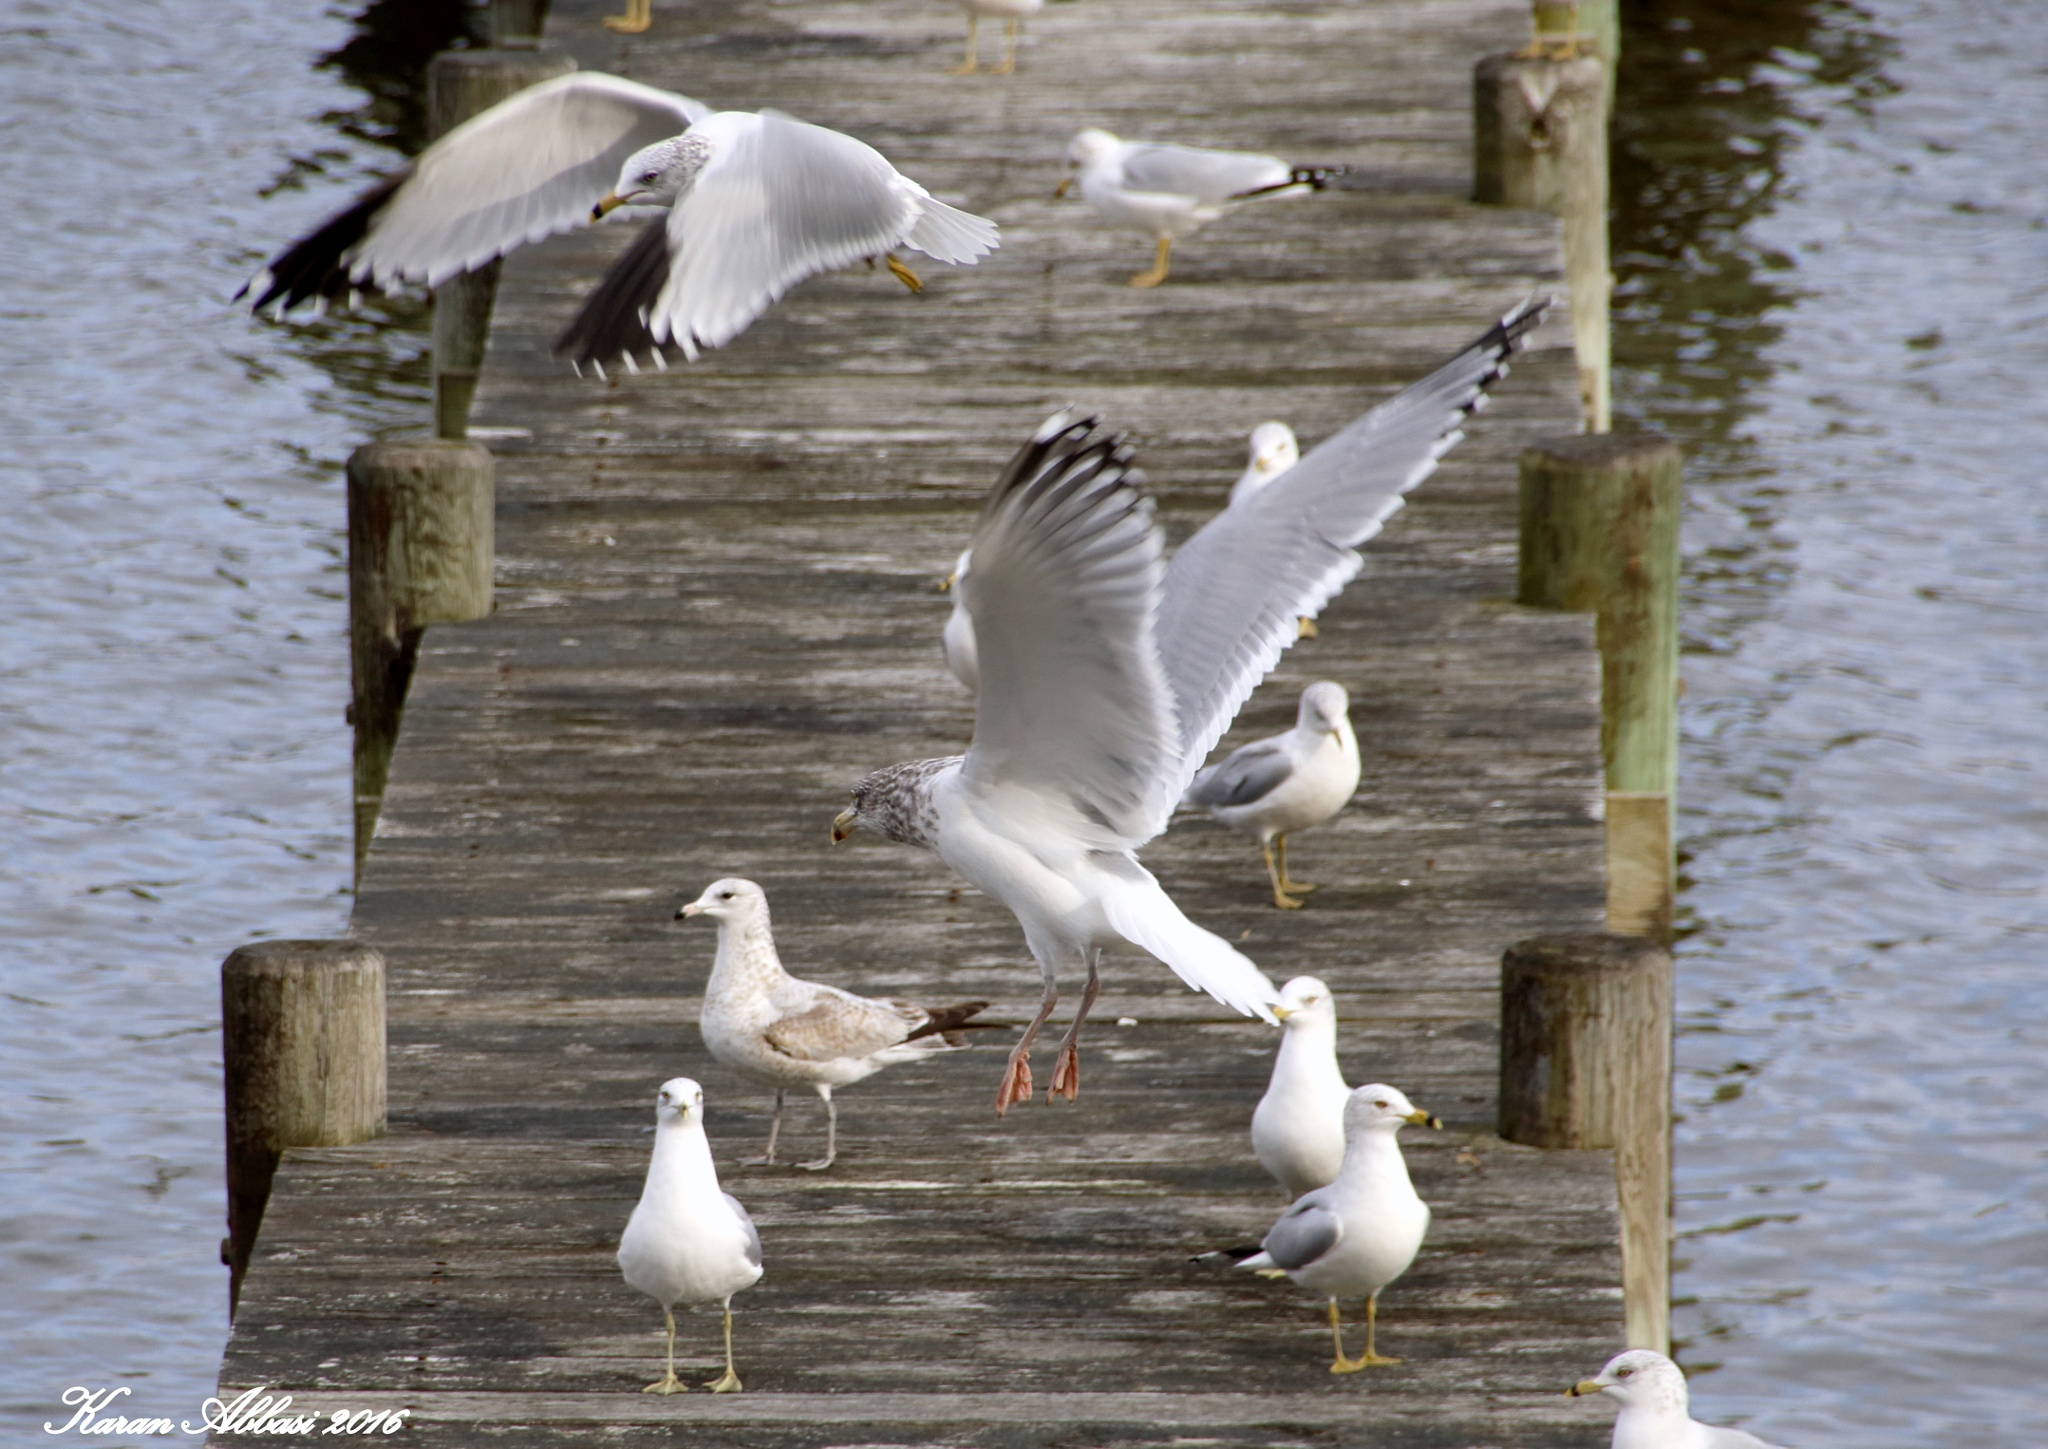 Seagulls on a Pier by Purely Inspired by Karan